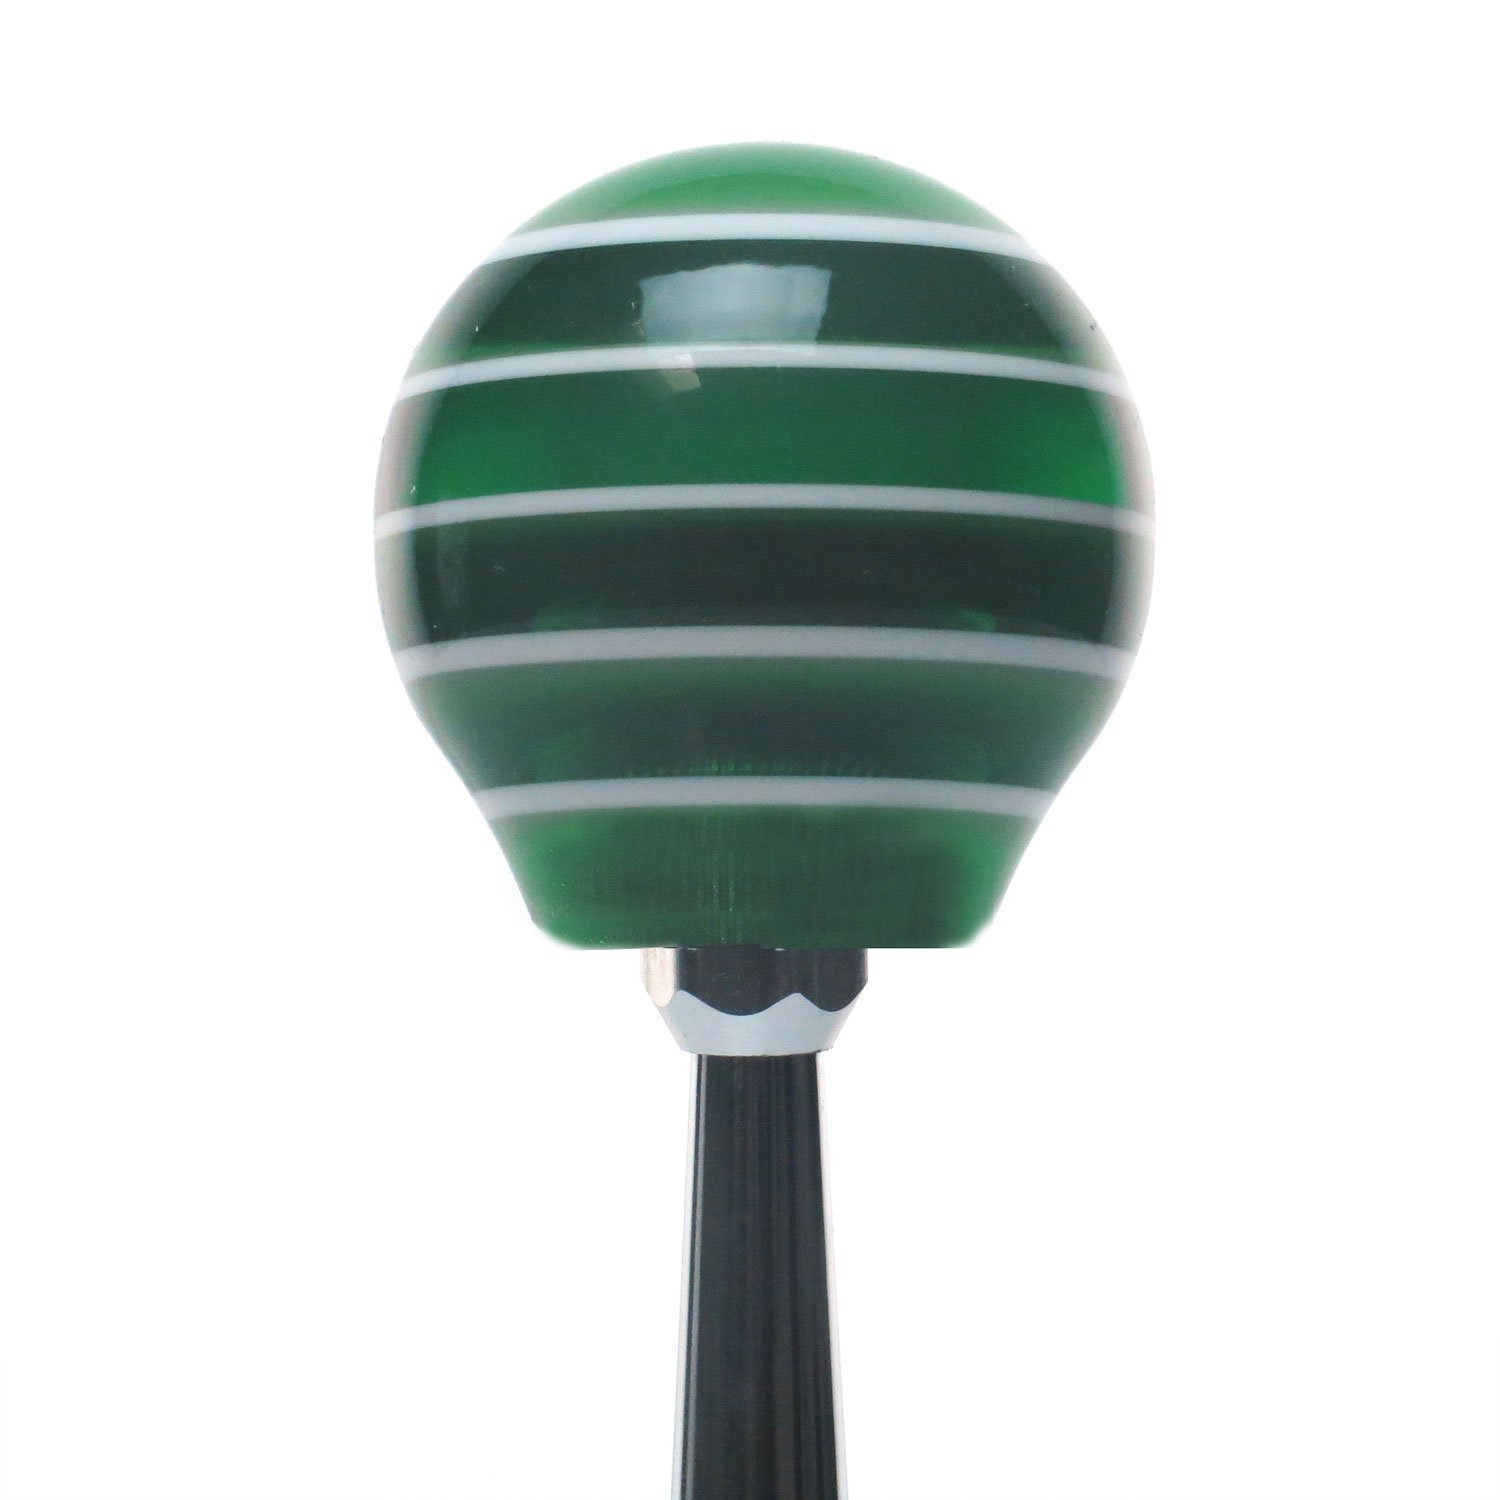 Pink Fancy Solid Directional Arrow Up American Shifter 121315 Green Stripe Shift Knob with M16 x 1.5 Insert